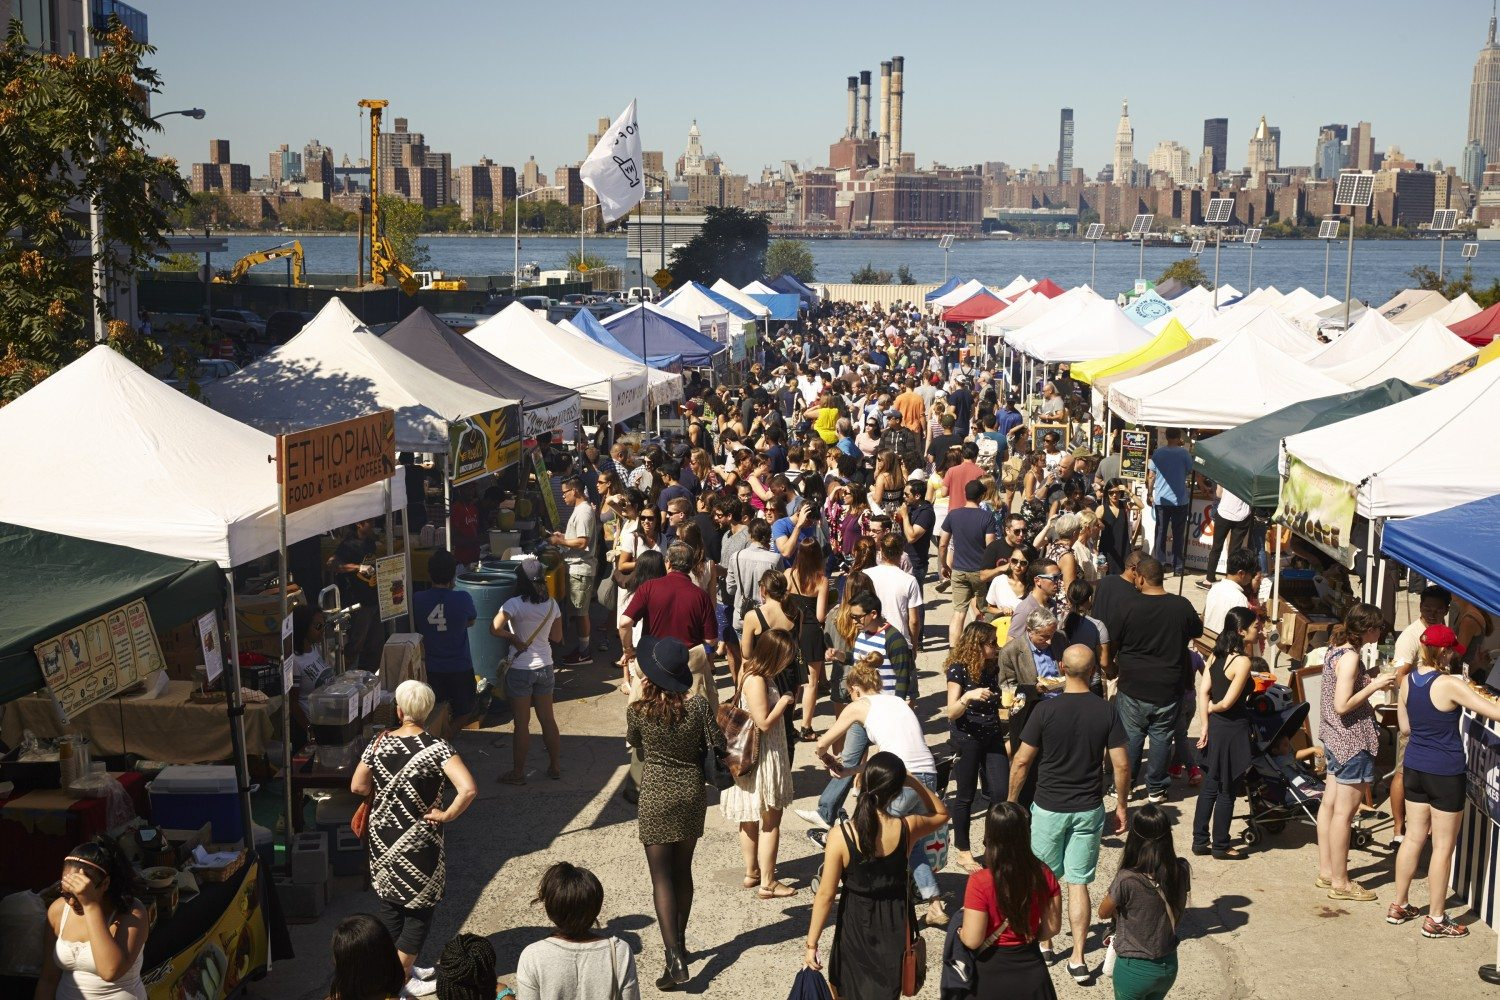 Photo: Courtesy of Smorgasburg.com